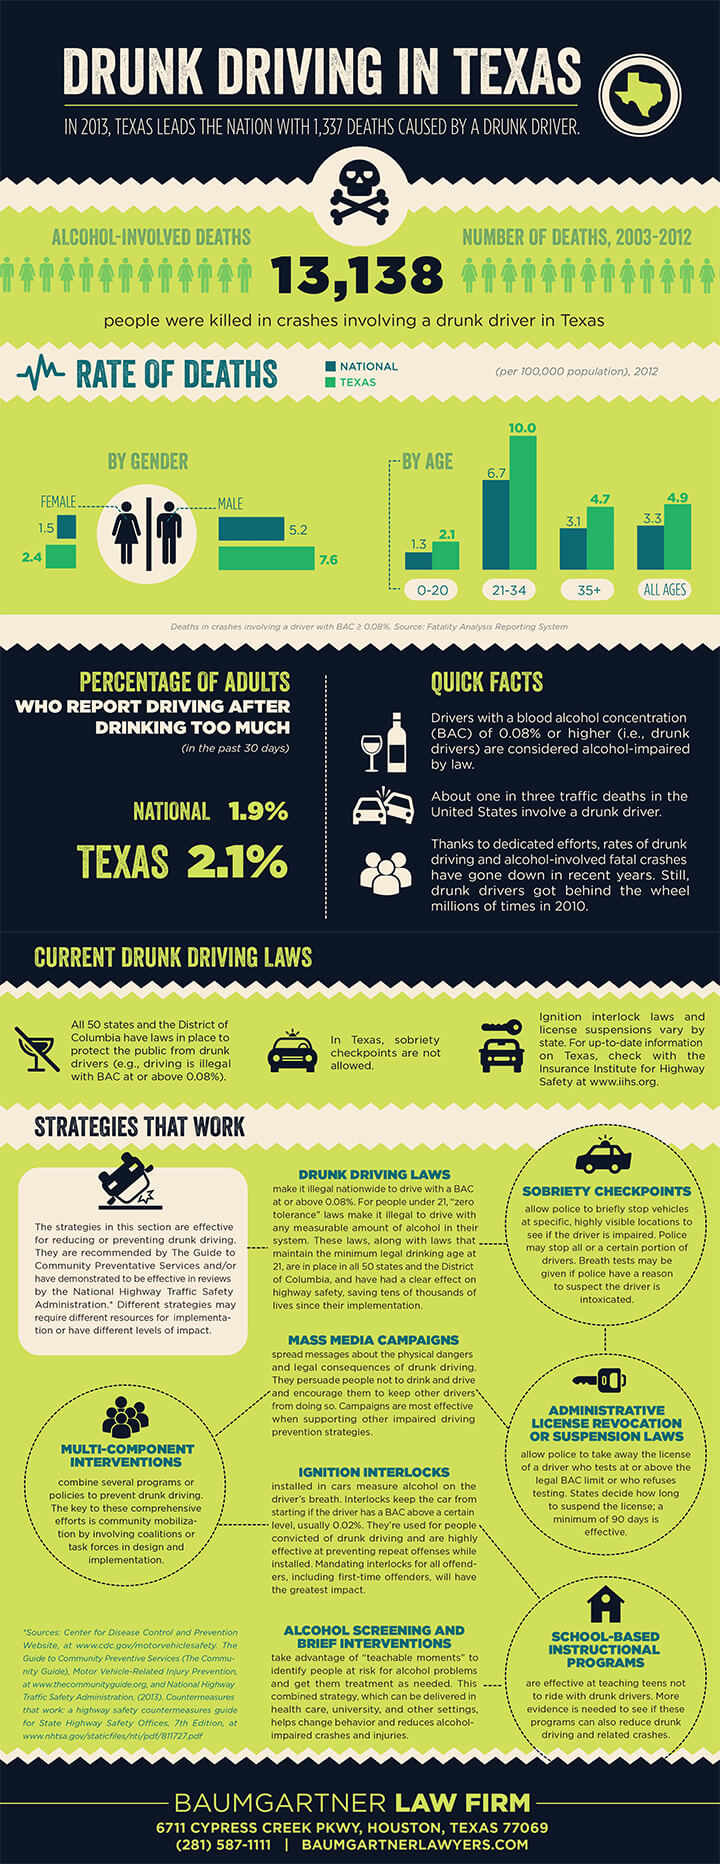 Drunk Driving in Texas Statisctics